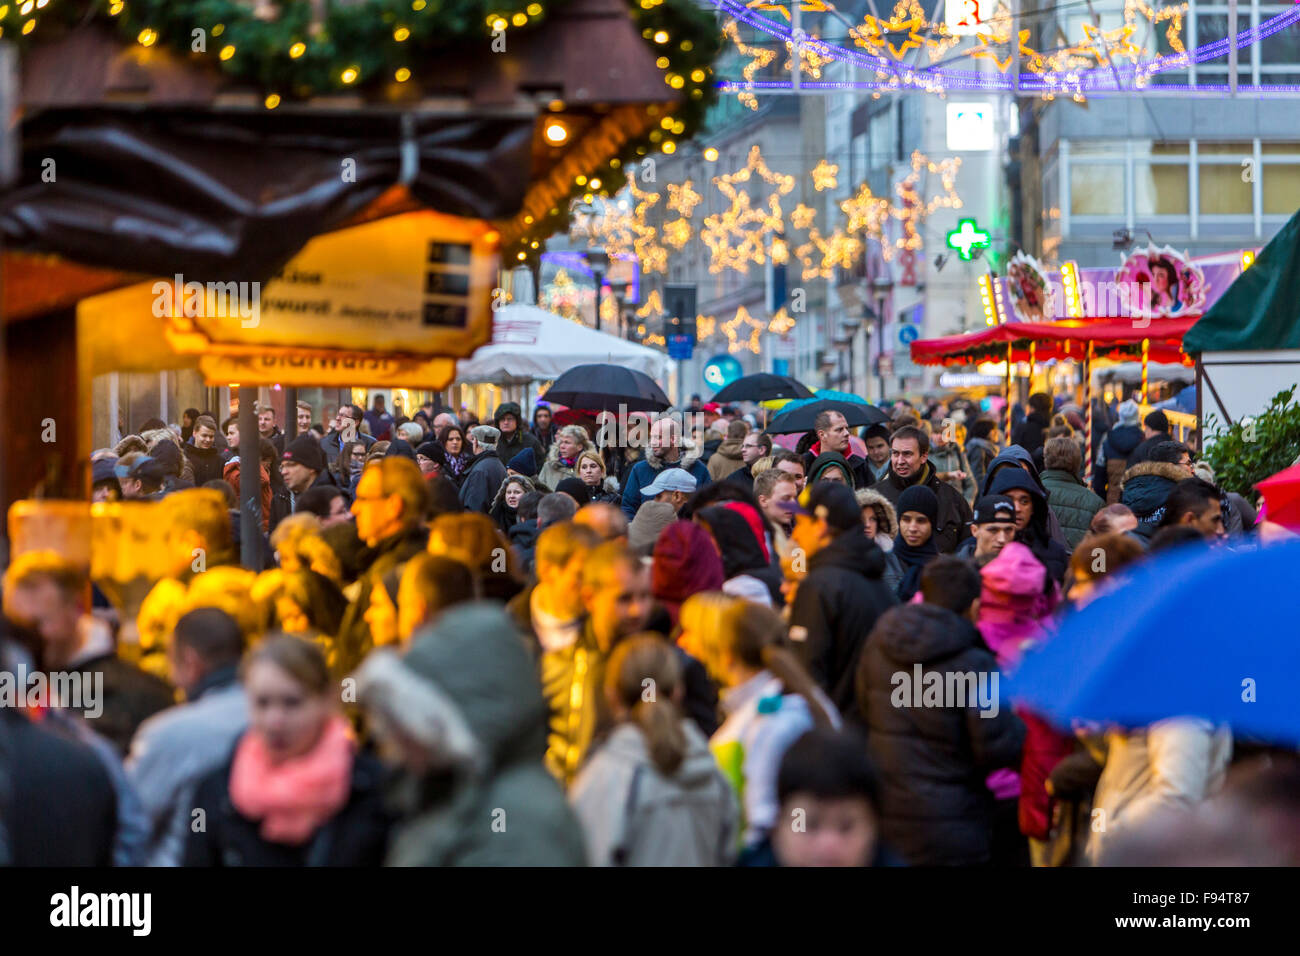 Christmas shopping in the city center of Essen, Germany, Christmas decoration in the streets, Christmas market, - Stock Image